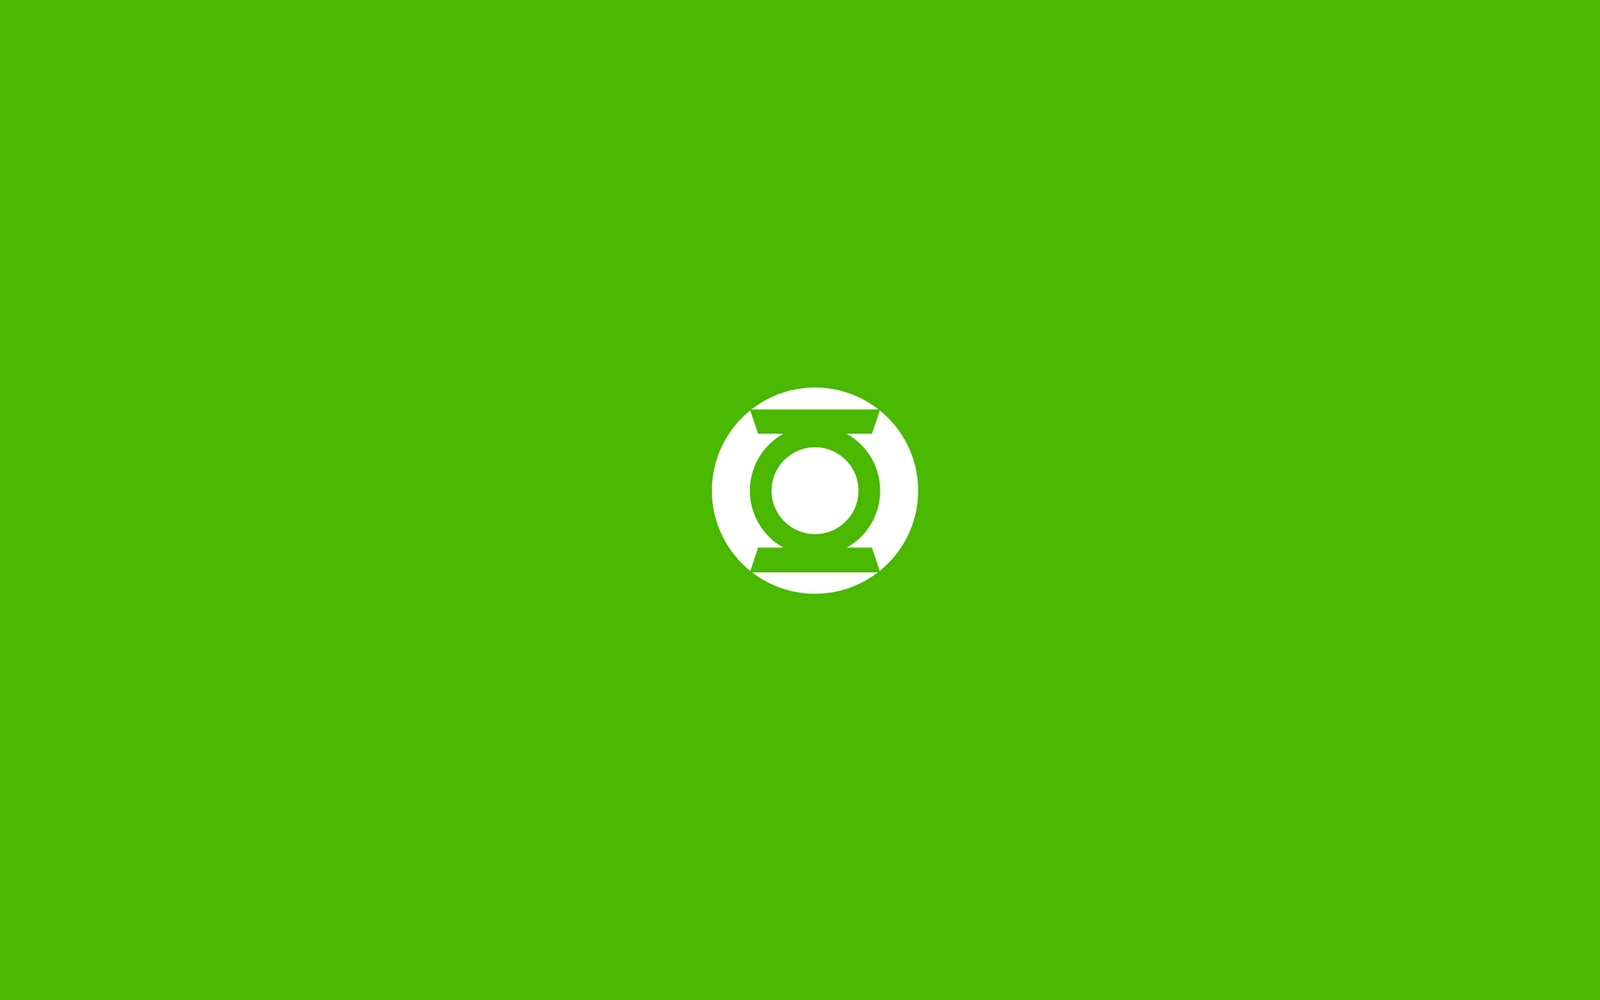 Green Lantern Comics Logo Minimal HD Wallpaperswallpapers 1600x1000